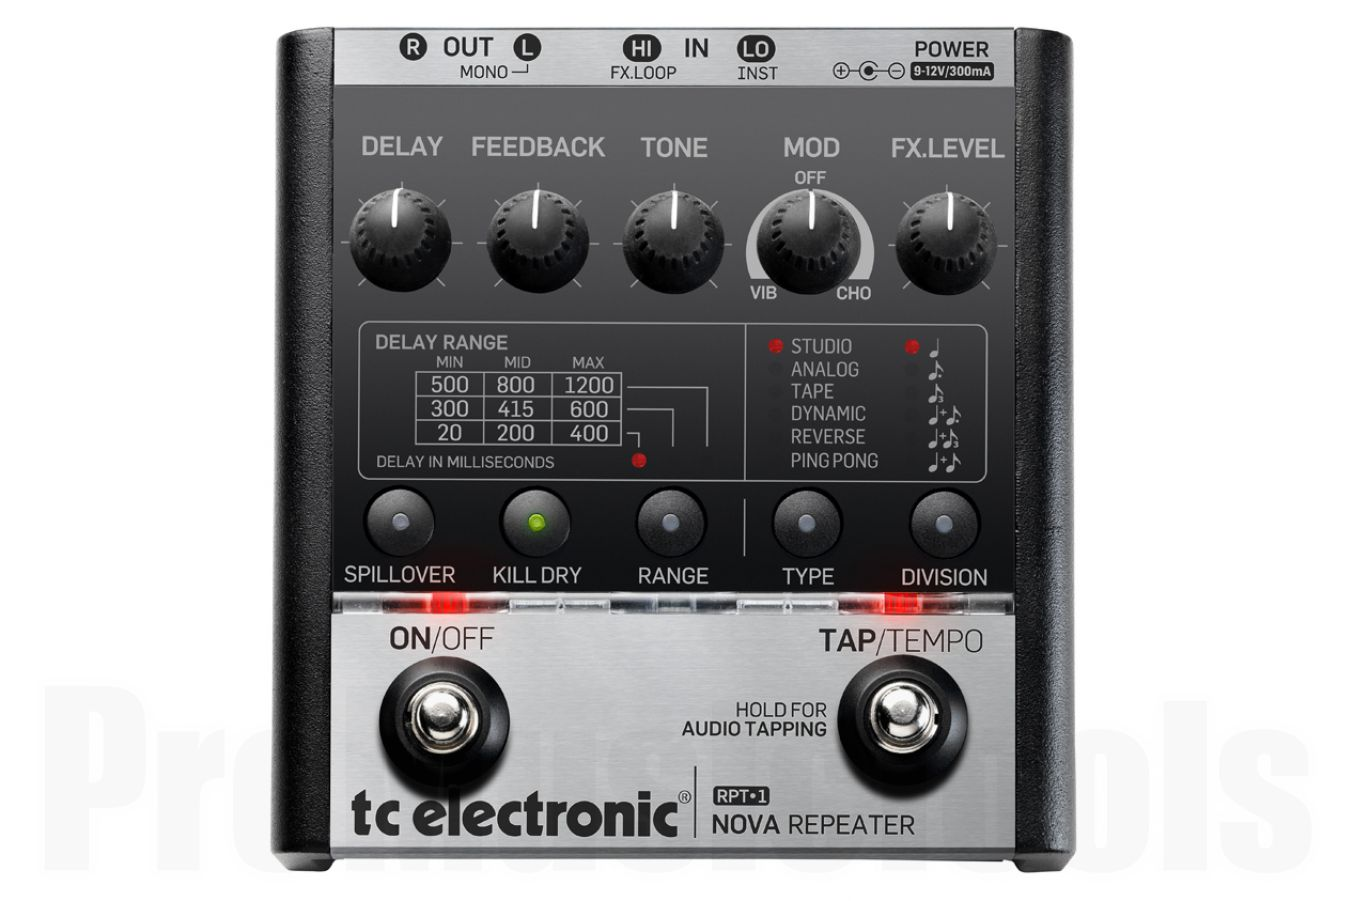 TC Electronic RPT-1 Nova Repeater